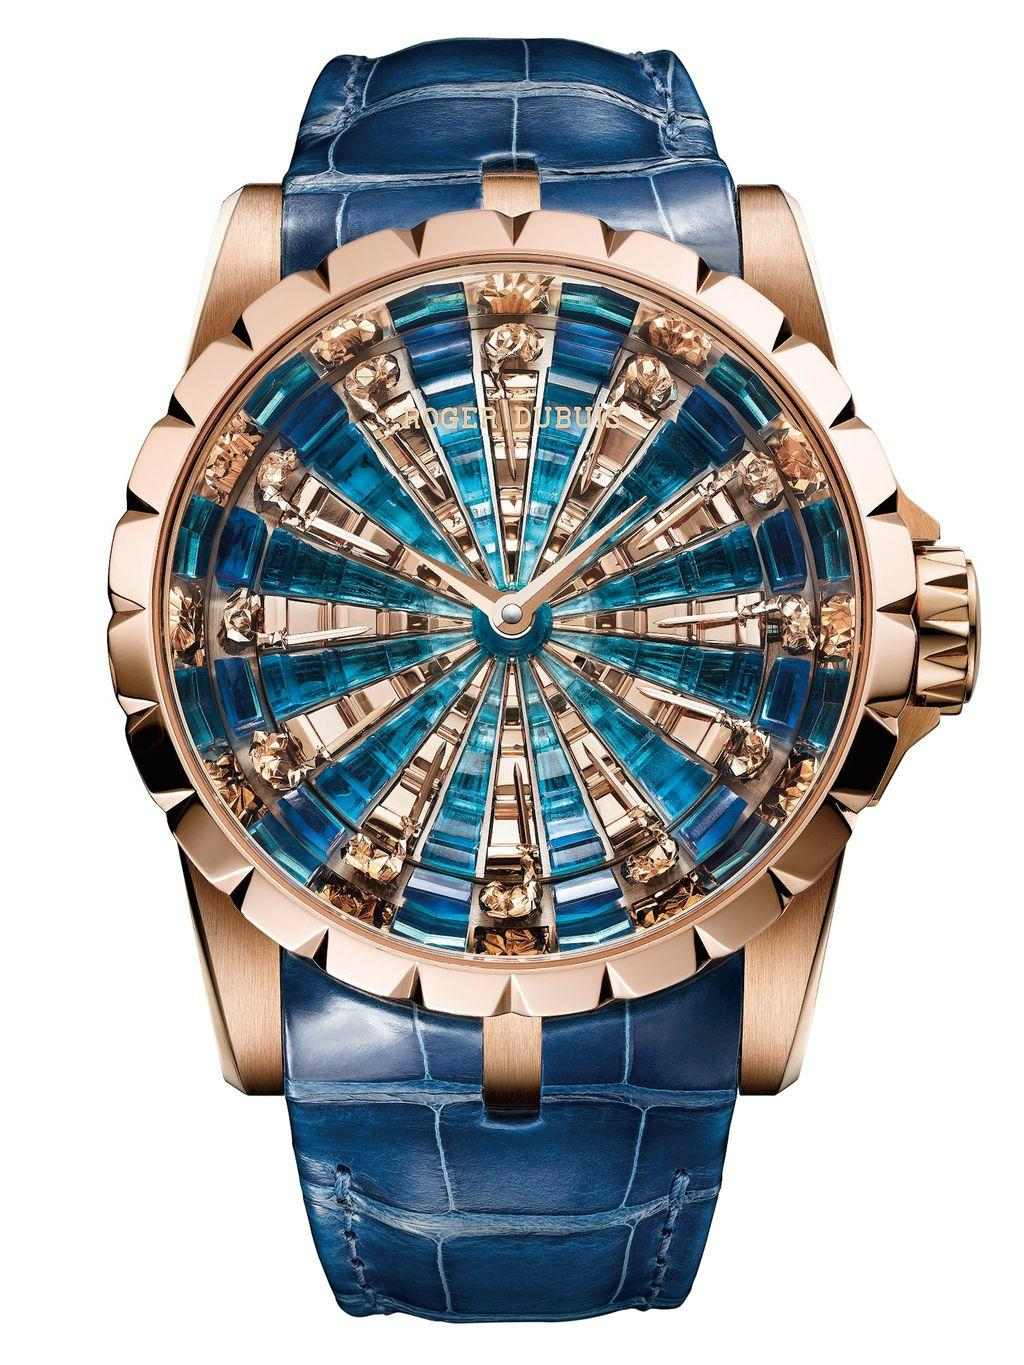 Roger Dubuis Excalibur The Knights of the Round Table 圓桌騎士腕錶